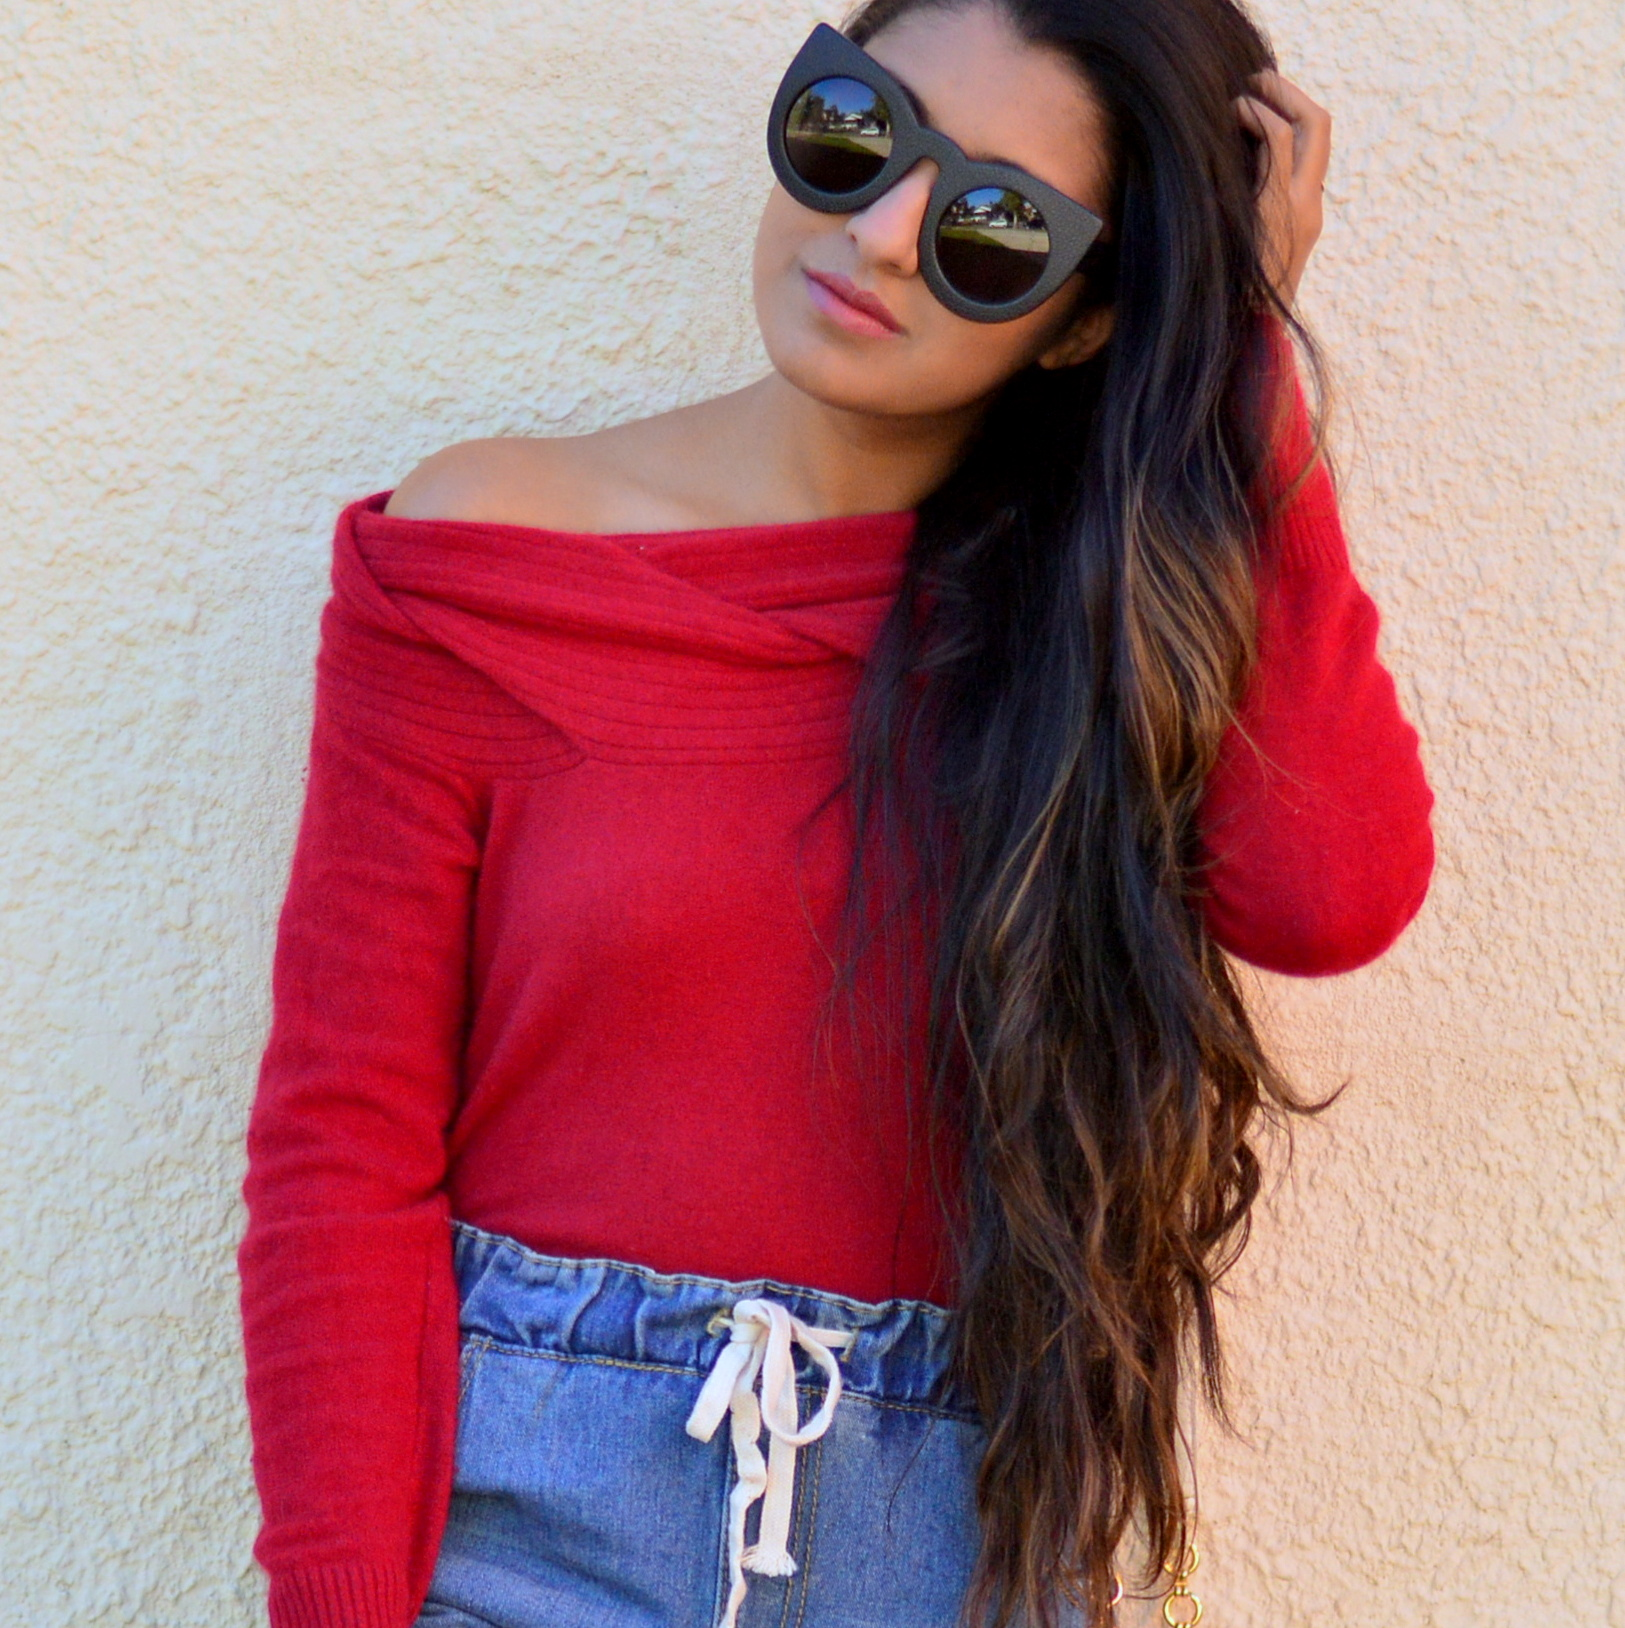 off-the-shoulder-sweater-plaid-jogger-jeans-blogger-style-fall-outfit 4